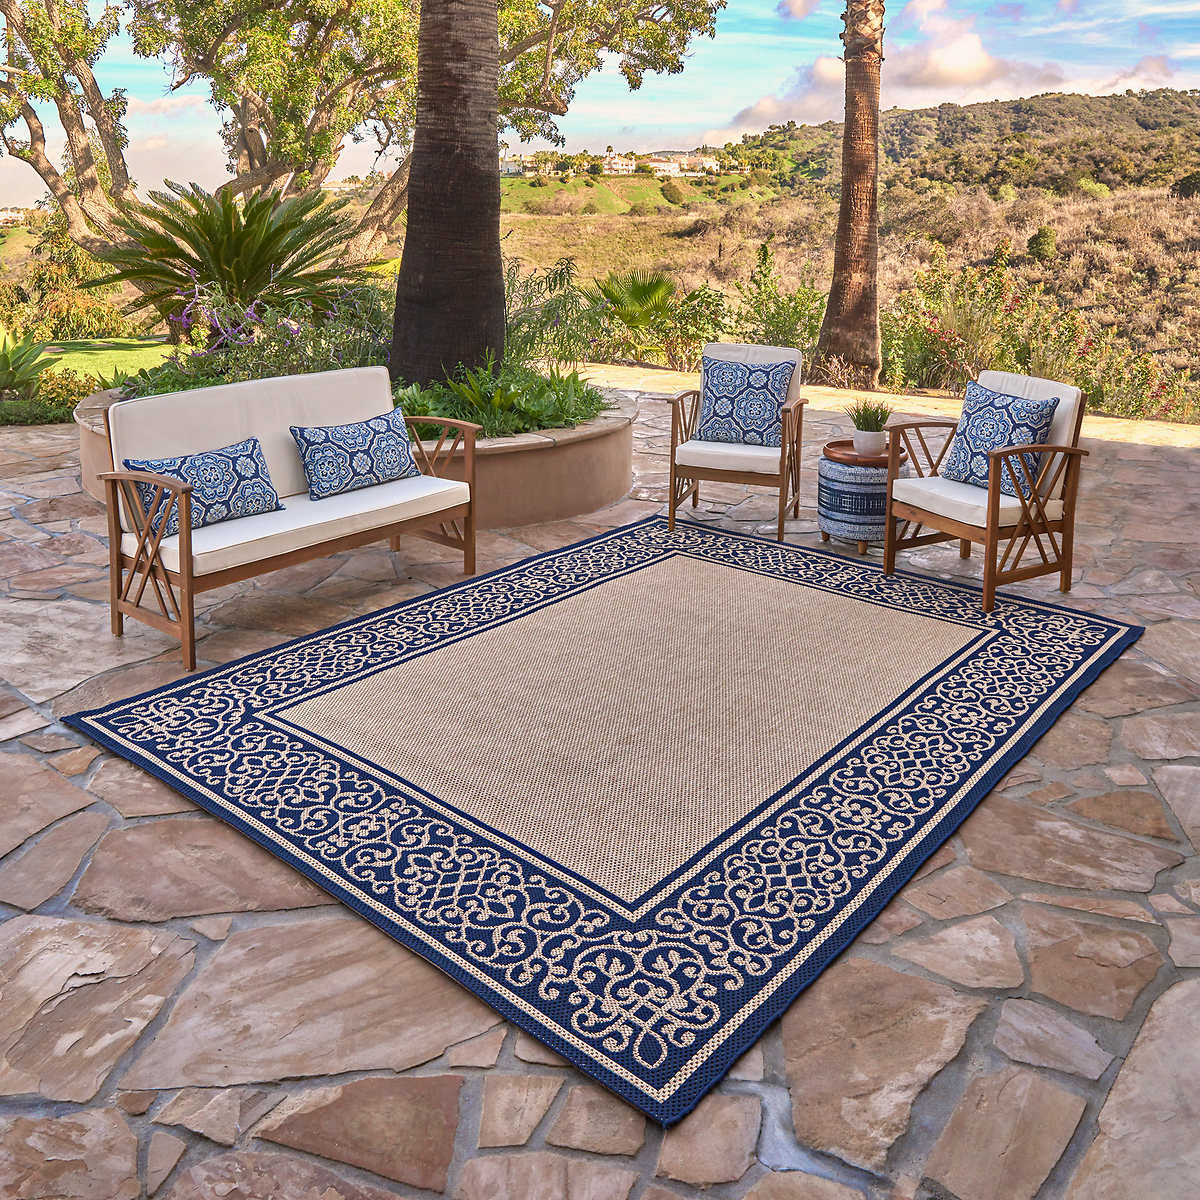 Outdoor Rugs Gallery - rugdubai.com